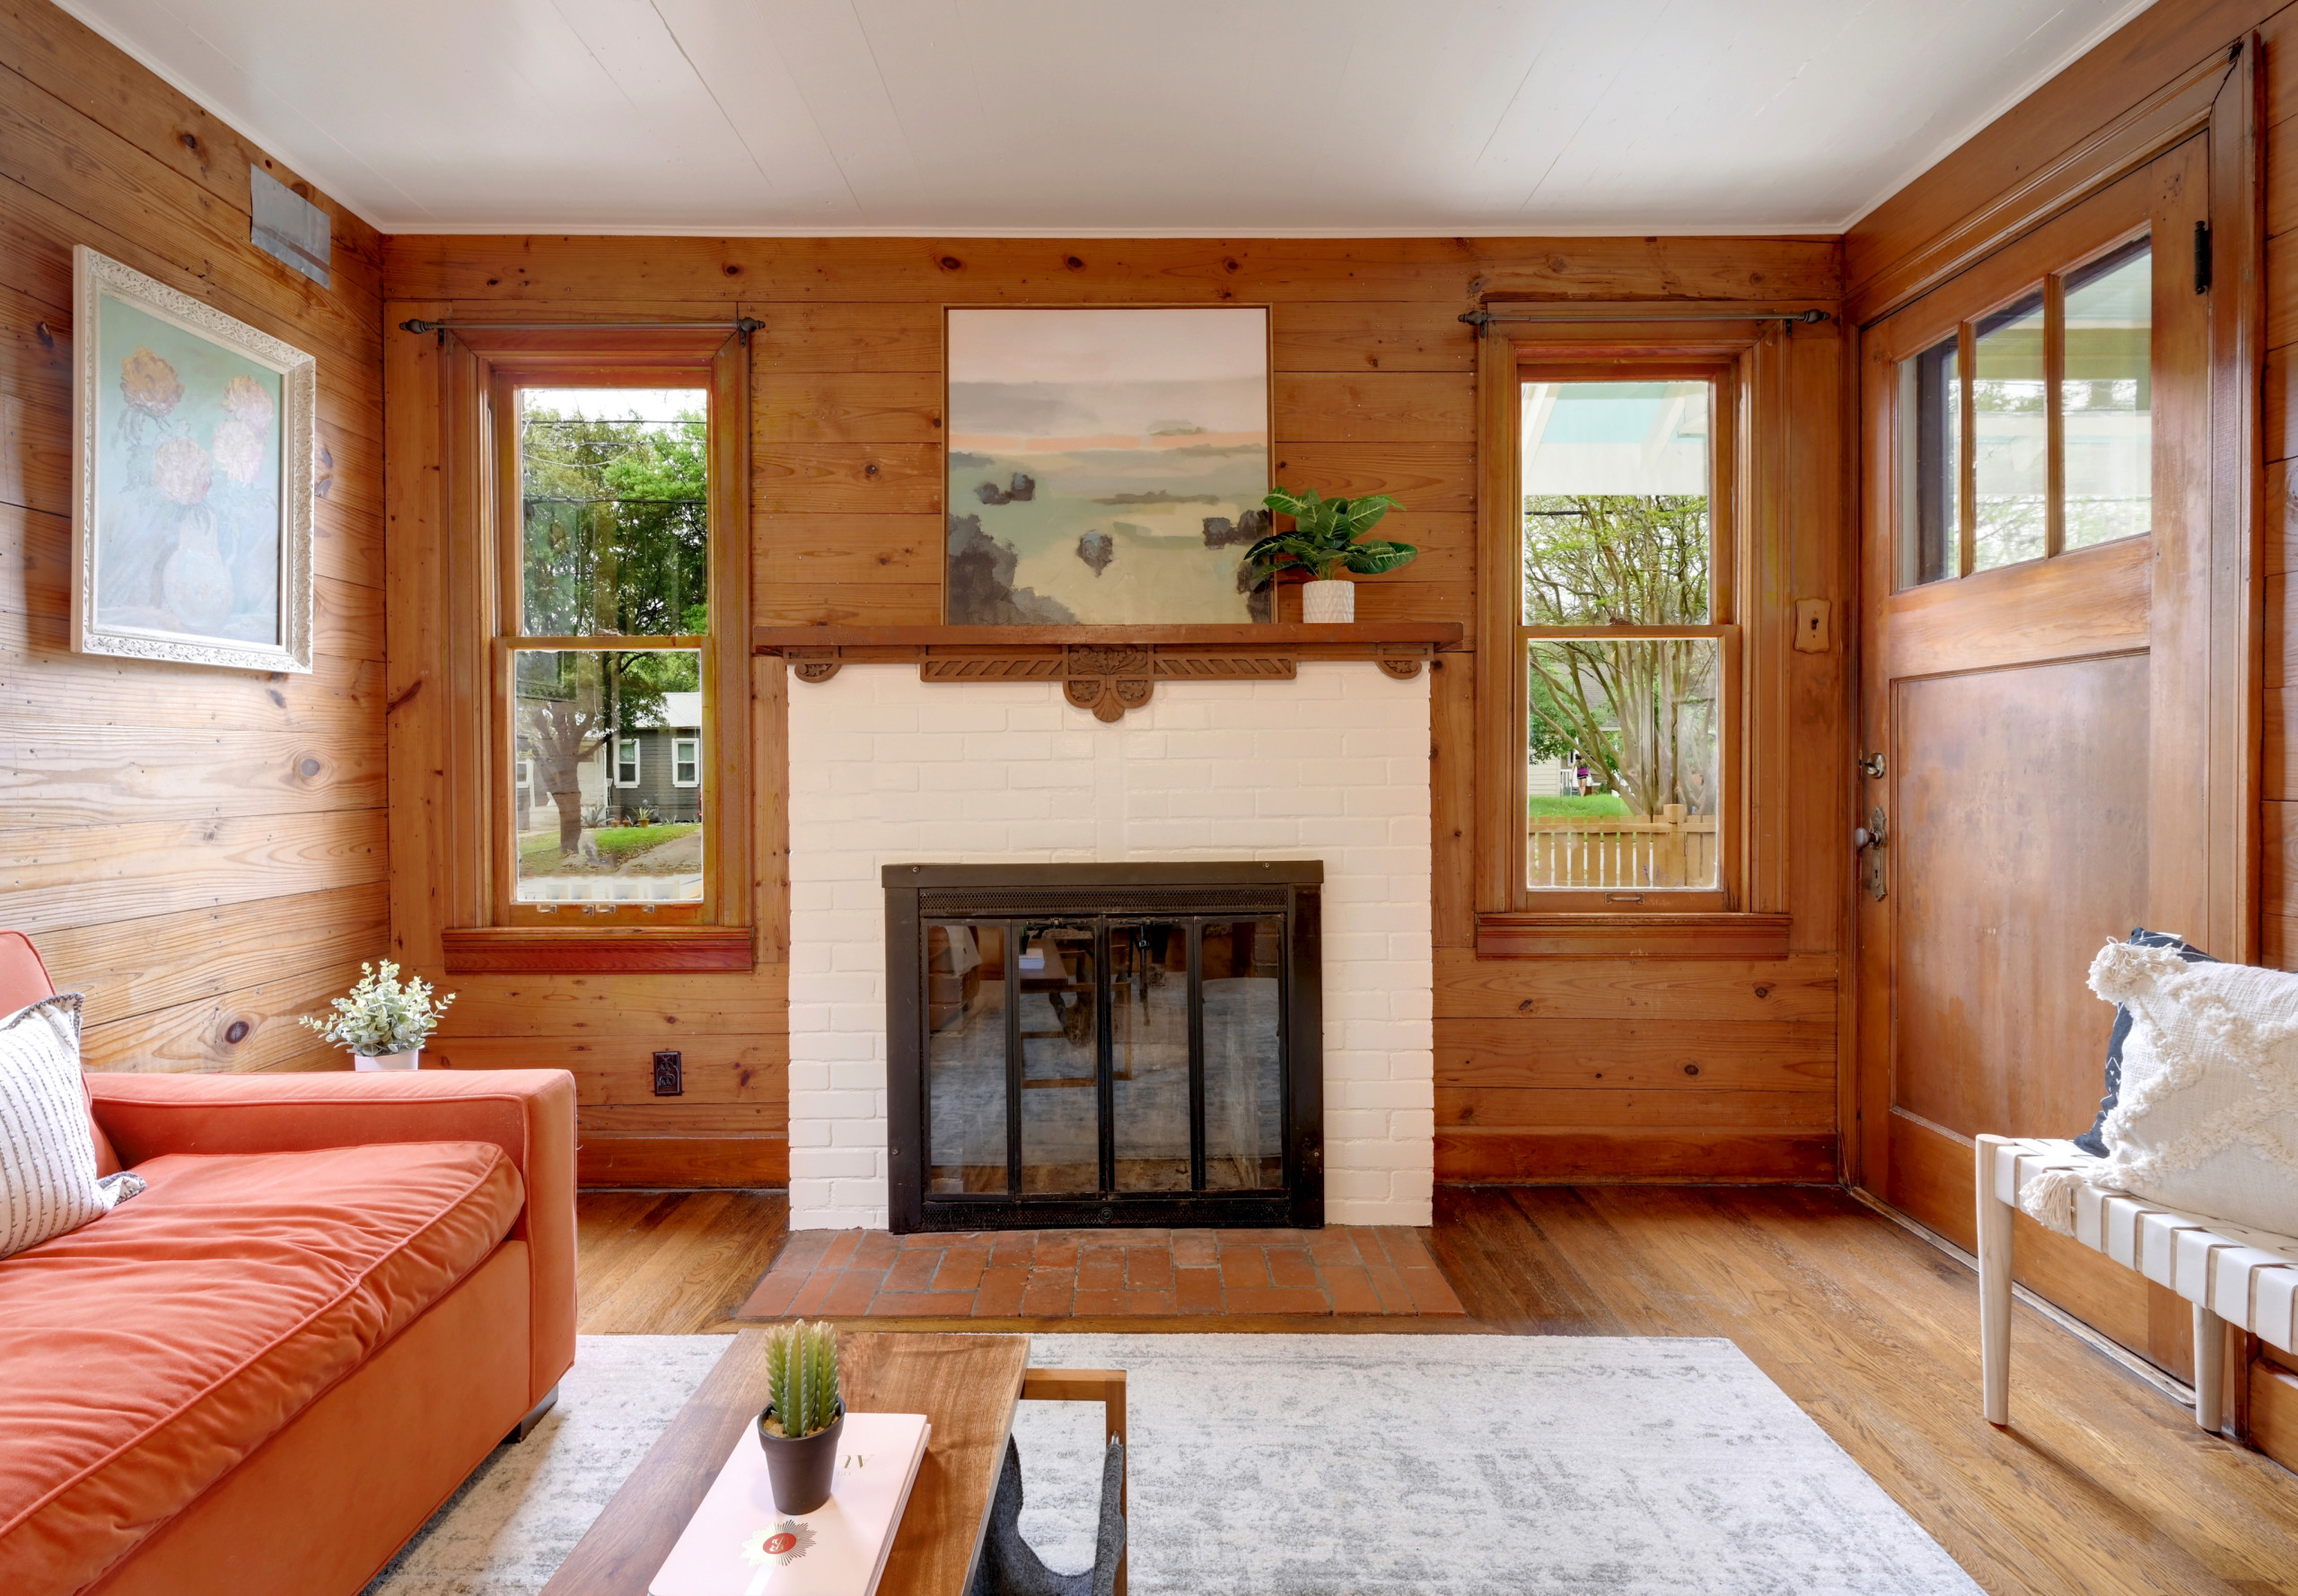 75 Beautiful Rustic Living Room Pictures Ideas November 2020 Houzz